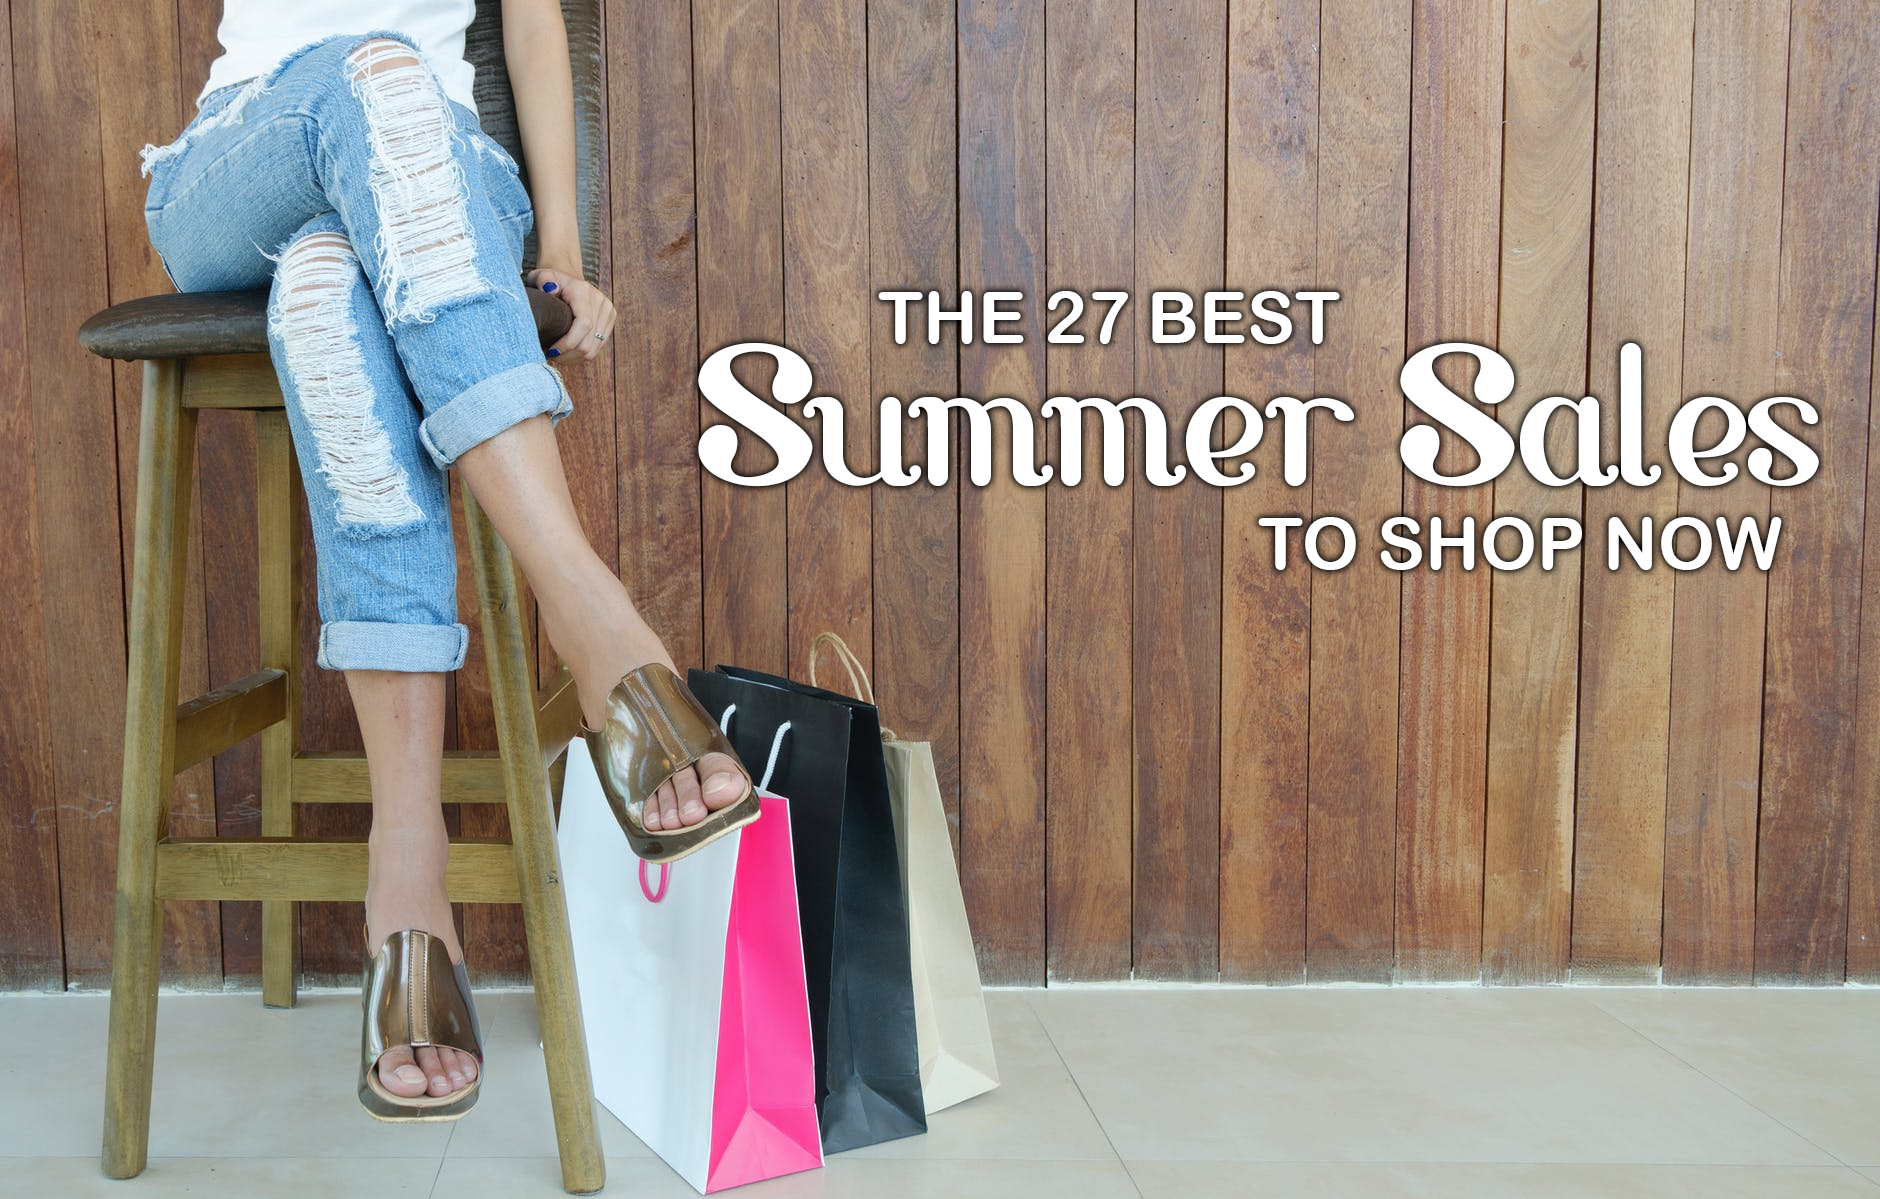 The 27 Best Summer Sales to Shop Now